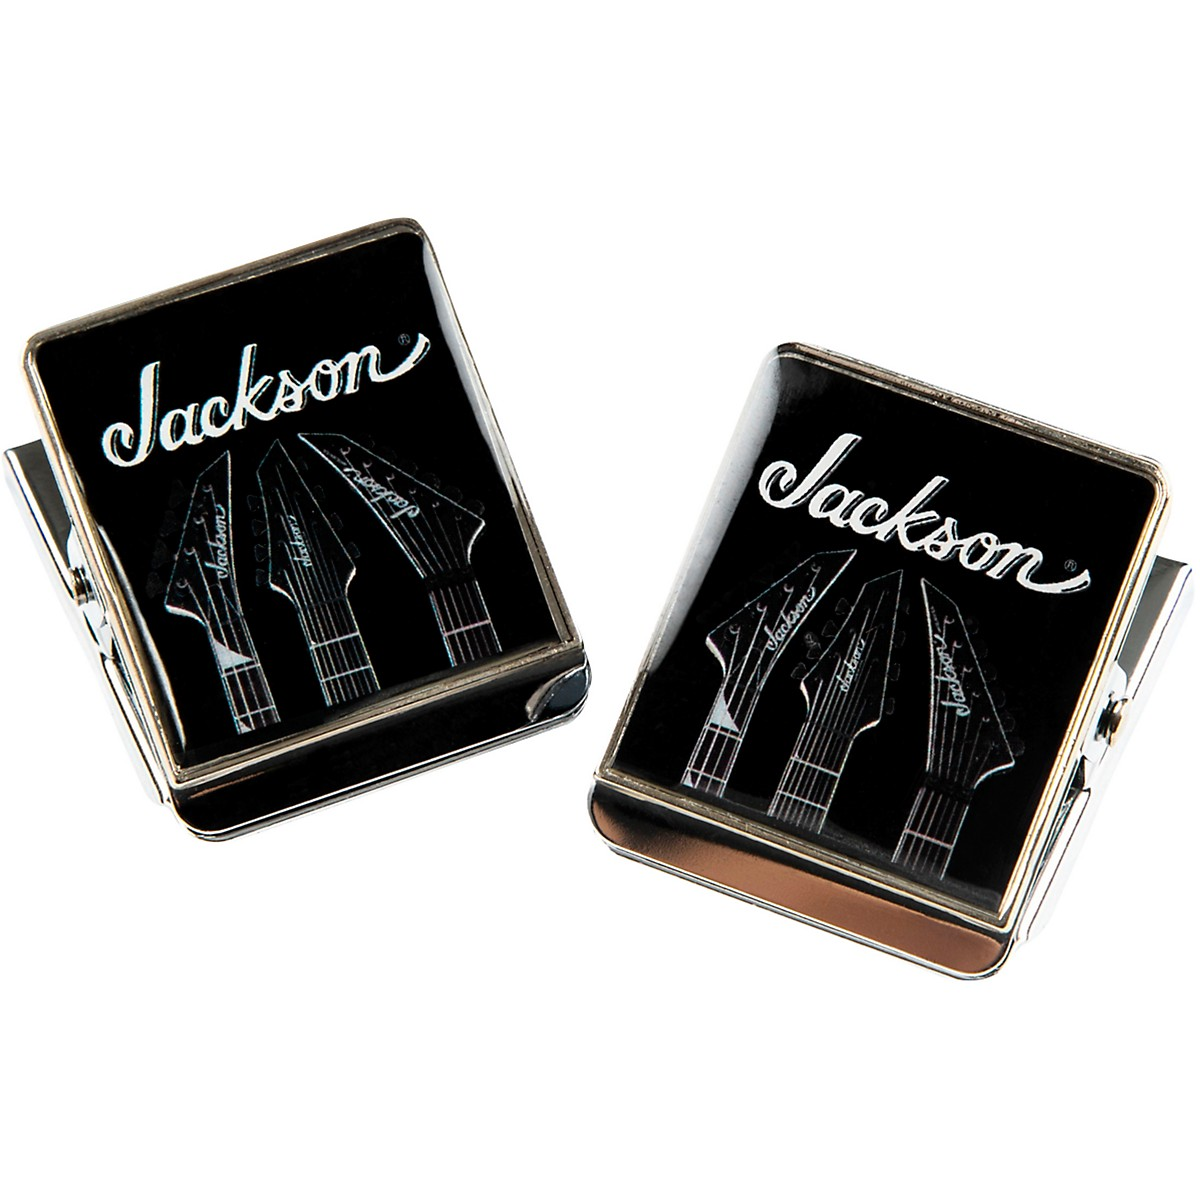 Jackson Logo Clip Magnets (Pair)